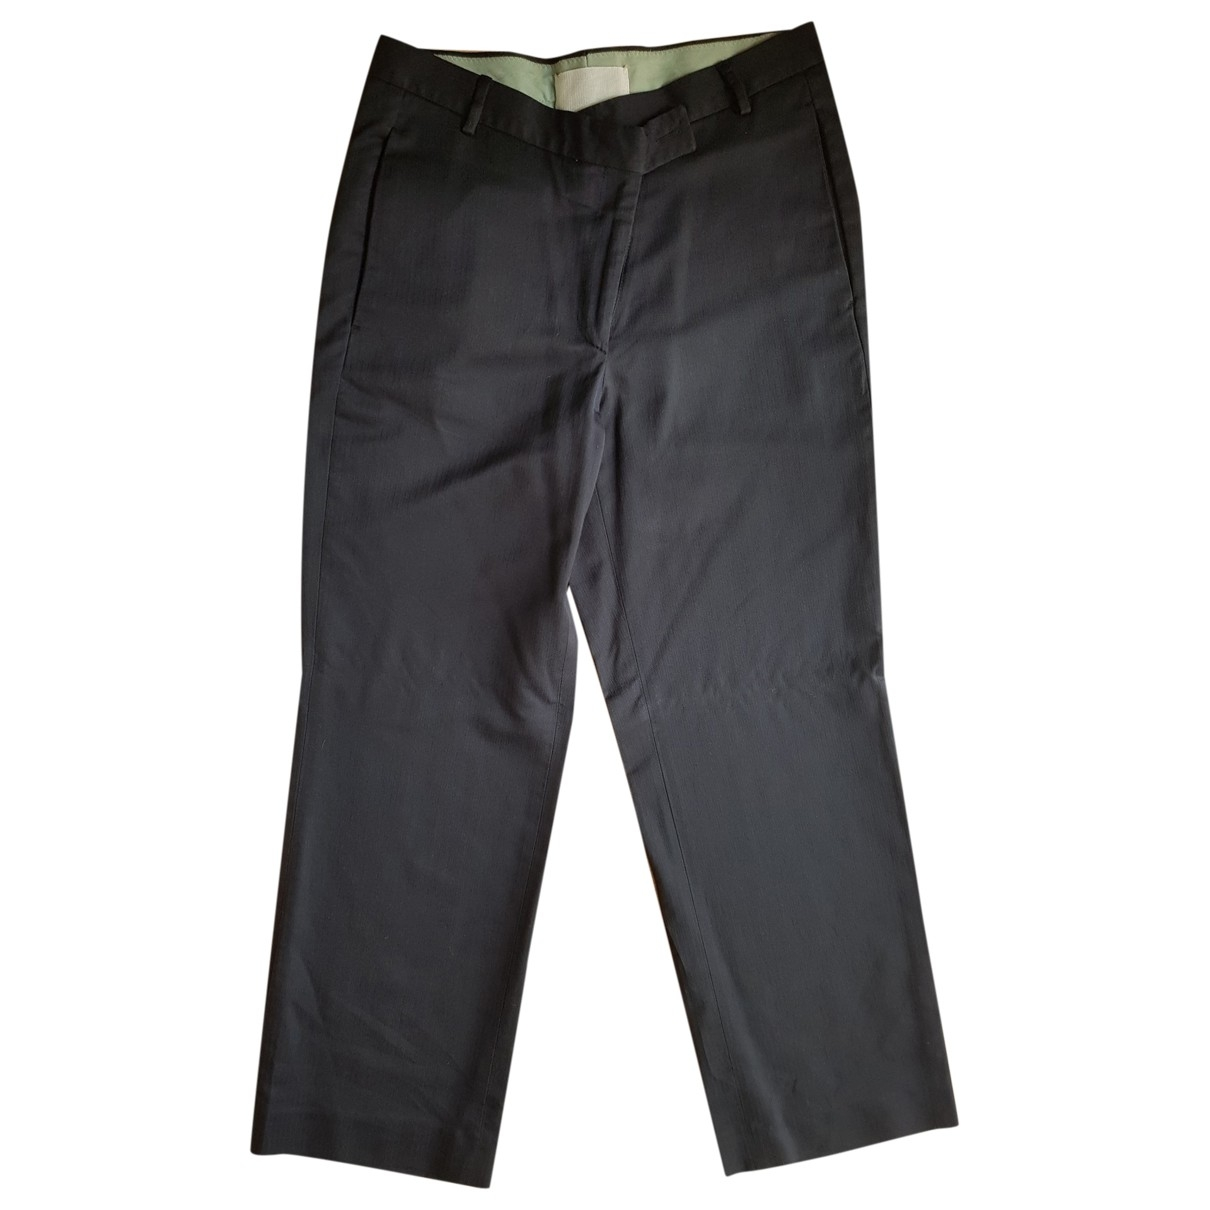 Maison Martin Margiela \N Black Cotton Trousers for Women 40 IT